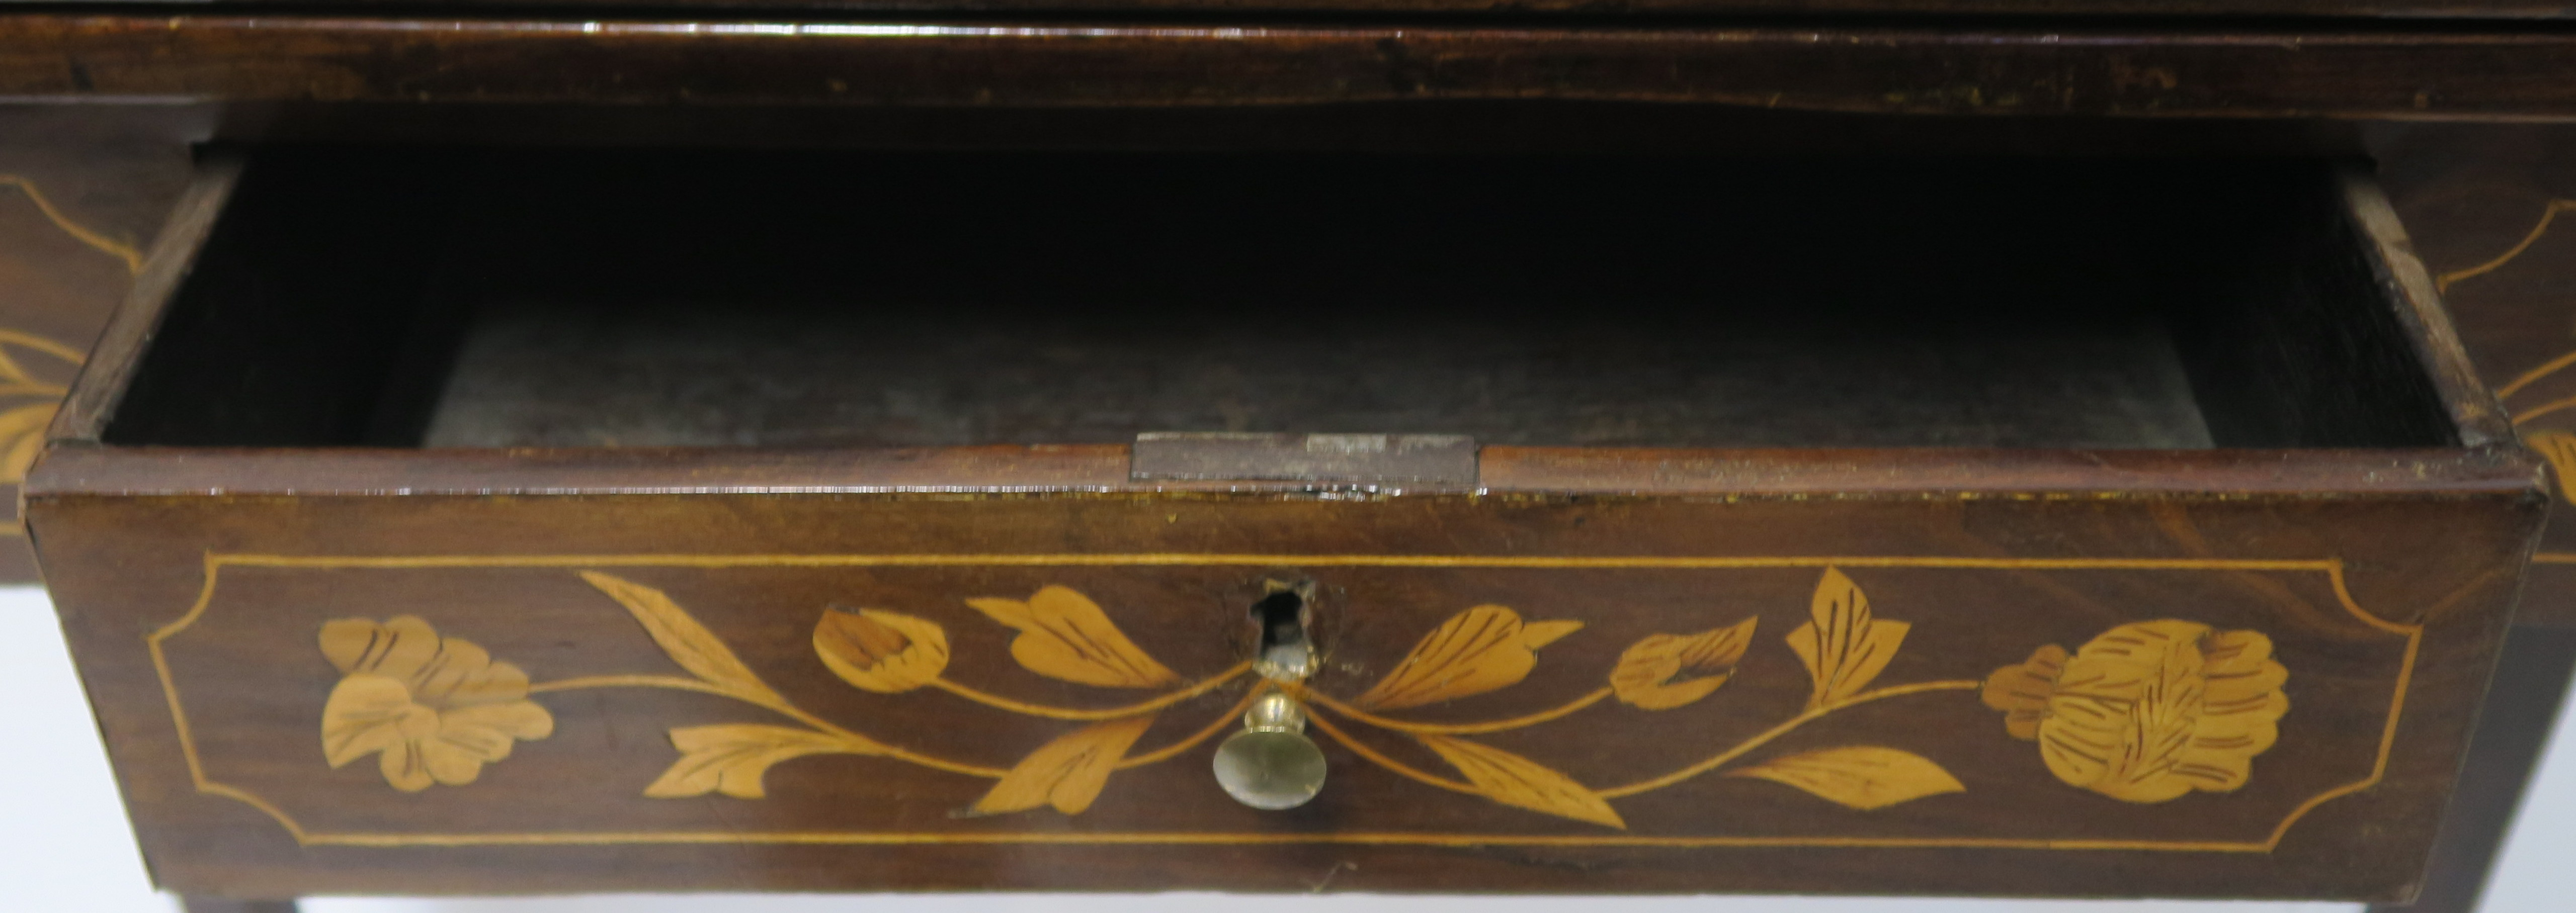 A DUTCH MARQUETRY WALNUT GAMES TABLE decorated with a basket of flowers, birds and scrolling - Image 4 of 11